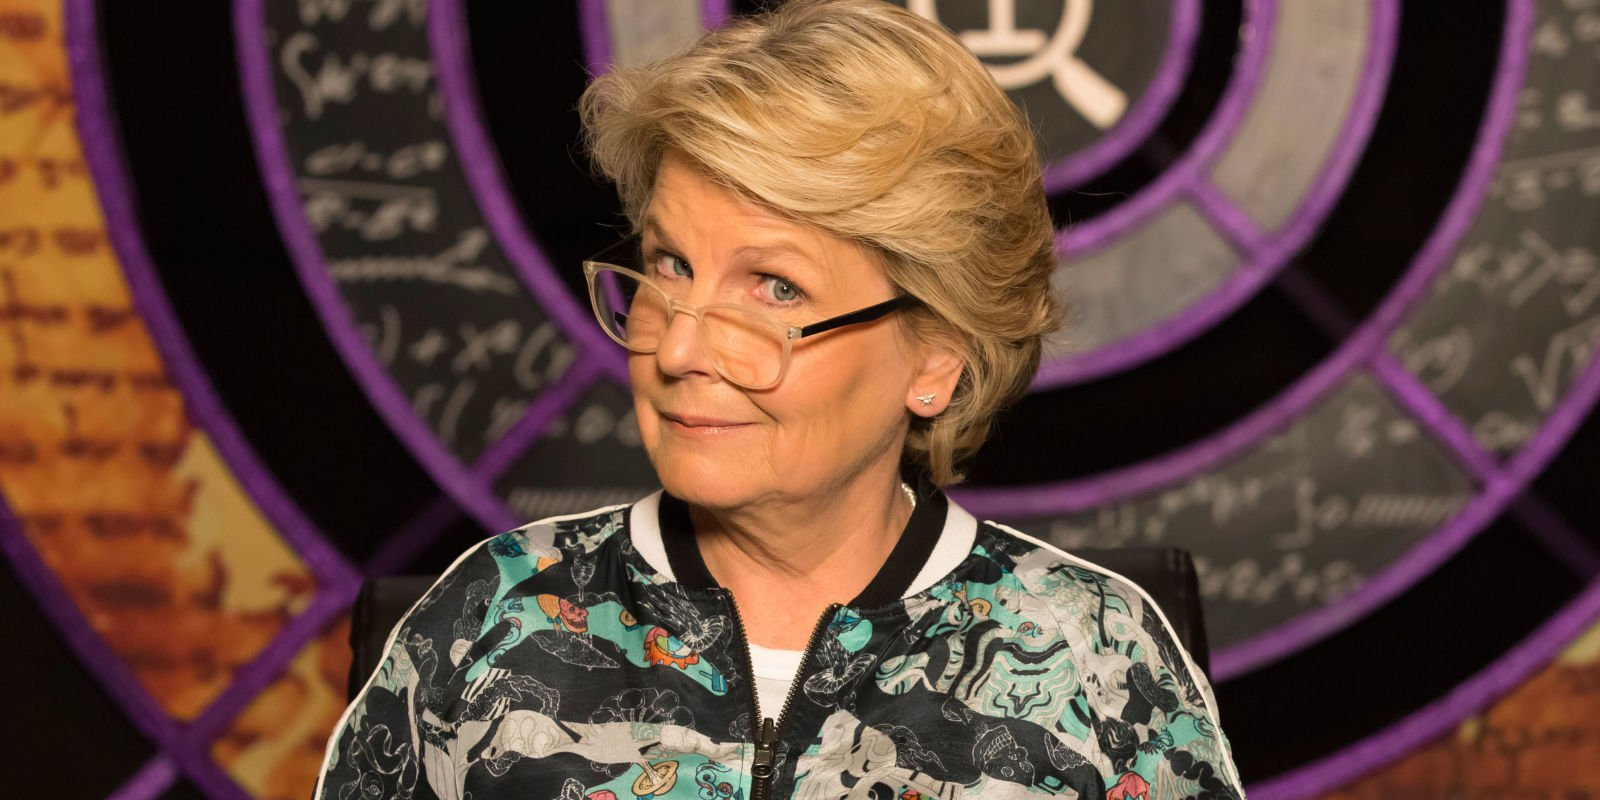 Sandi Toksvig reveals she's paid just 40% of what Stephen Fry's wage was for the same job as QI host